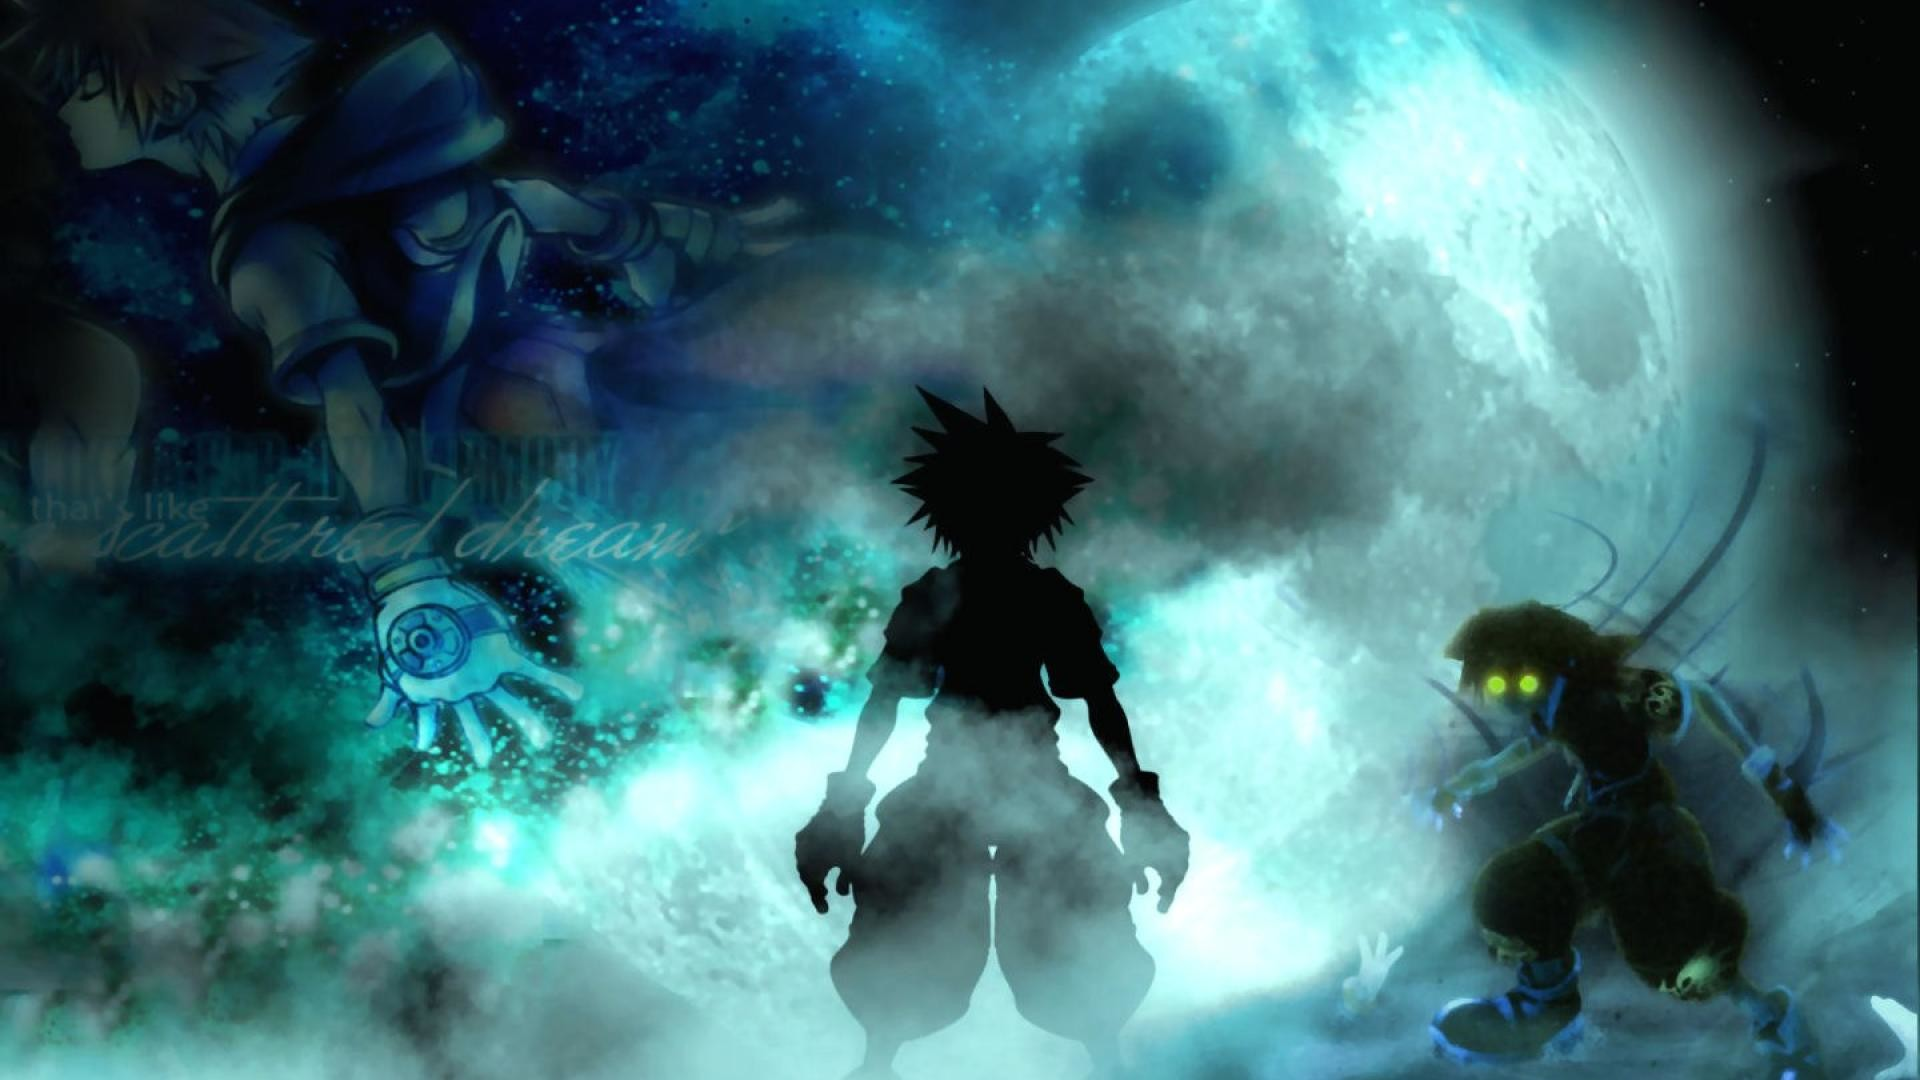 1920x1080  HD Kingdom Hearts Wallpapers Group (76+) · Download · kingdom hearts  wallpaper ...